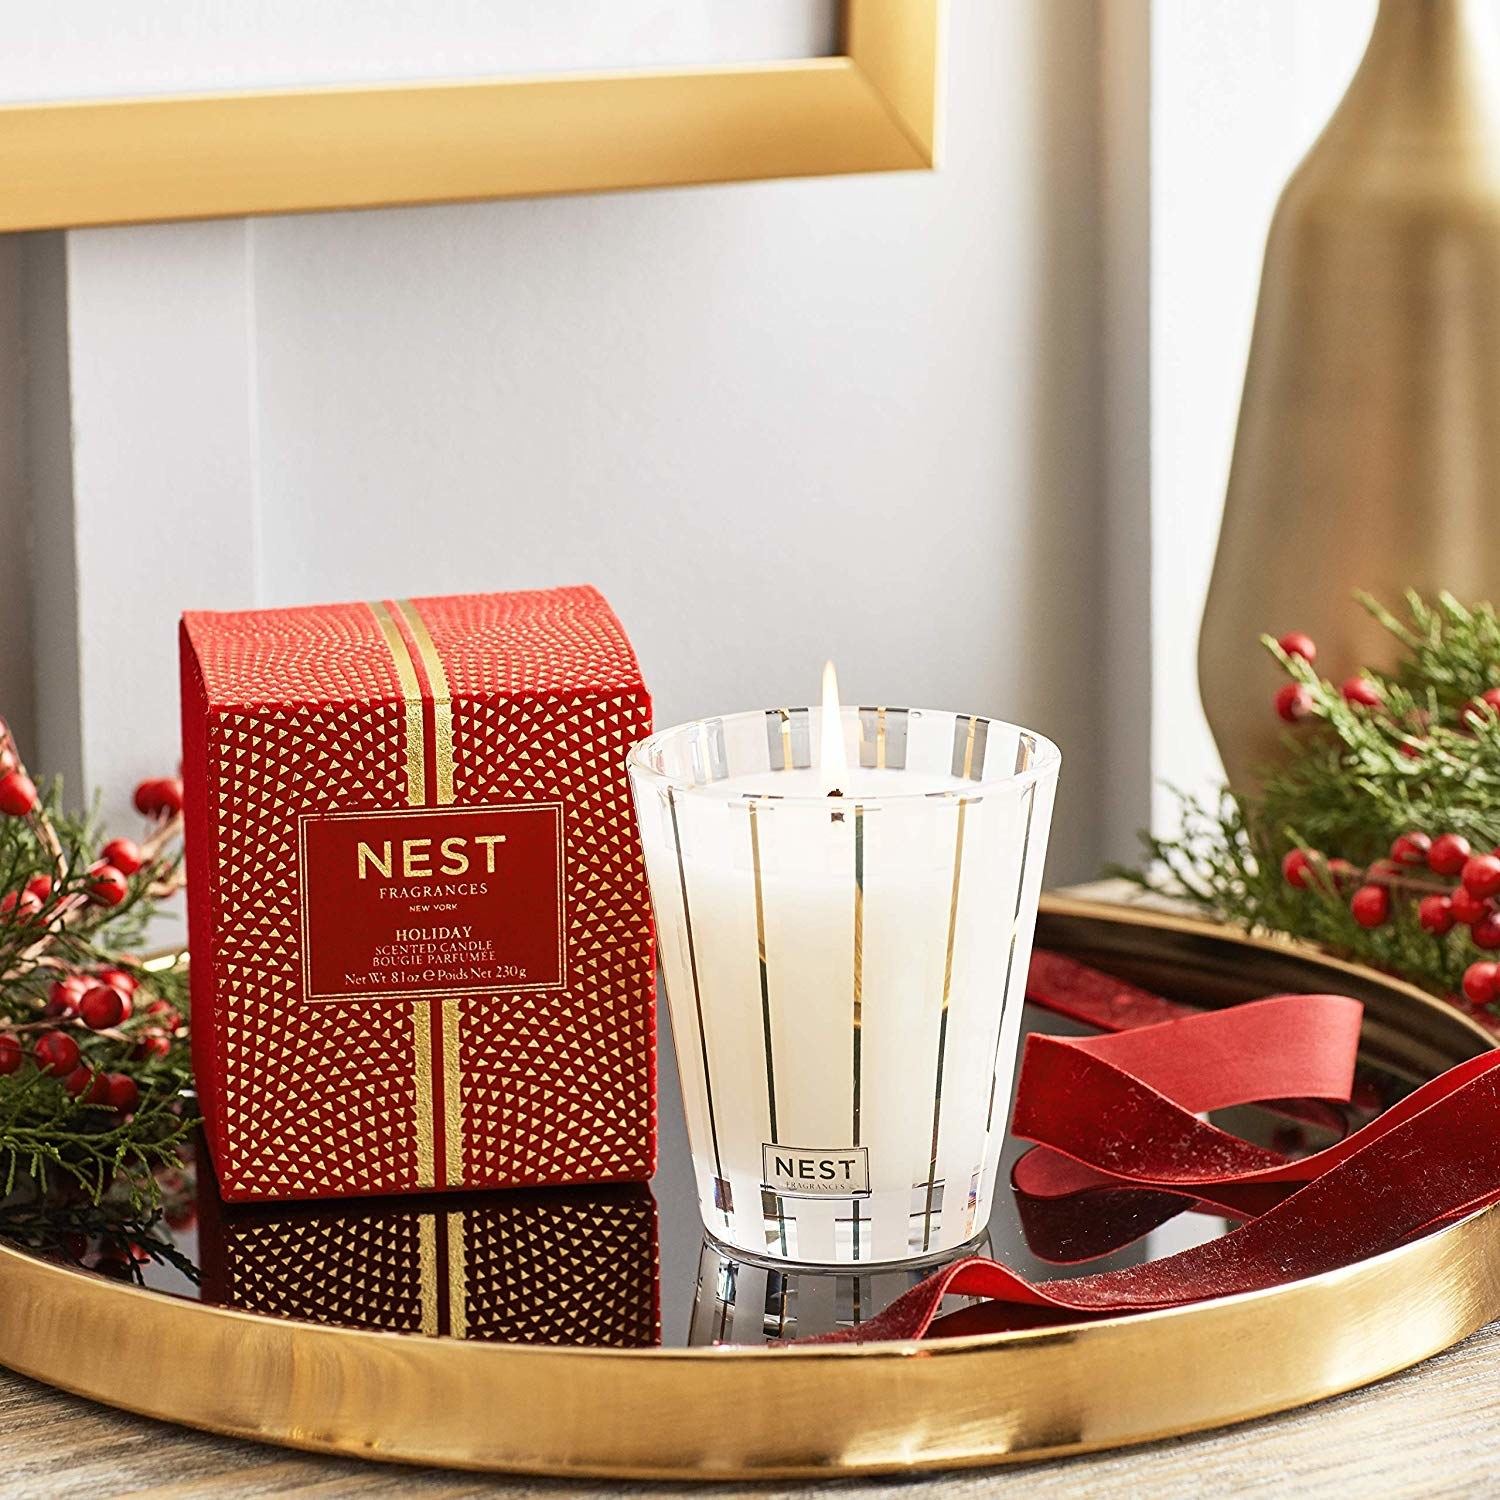 A holiday Nest Candle set up as decor.